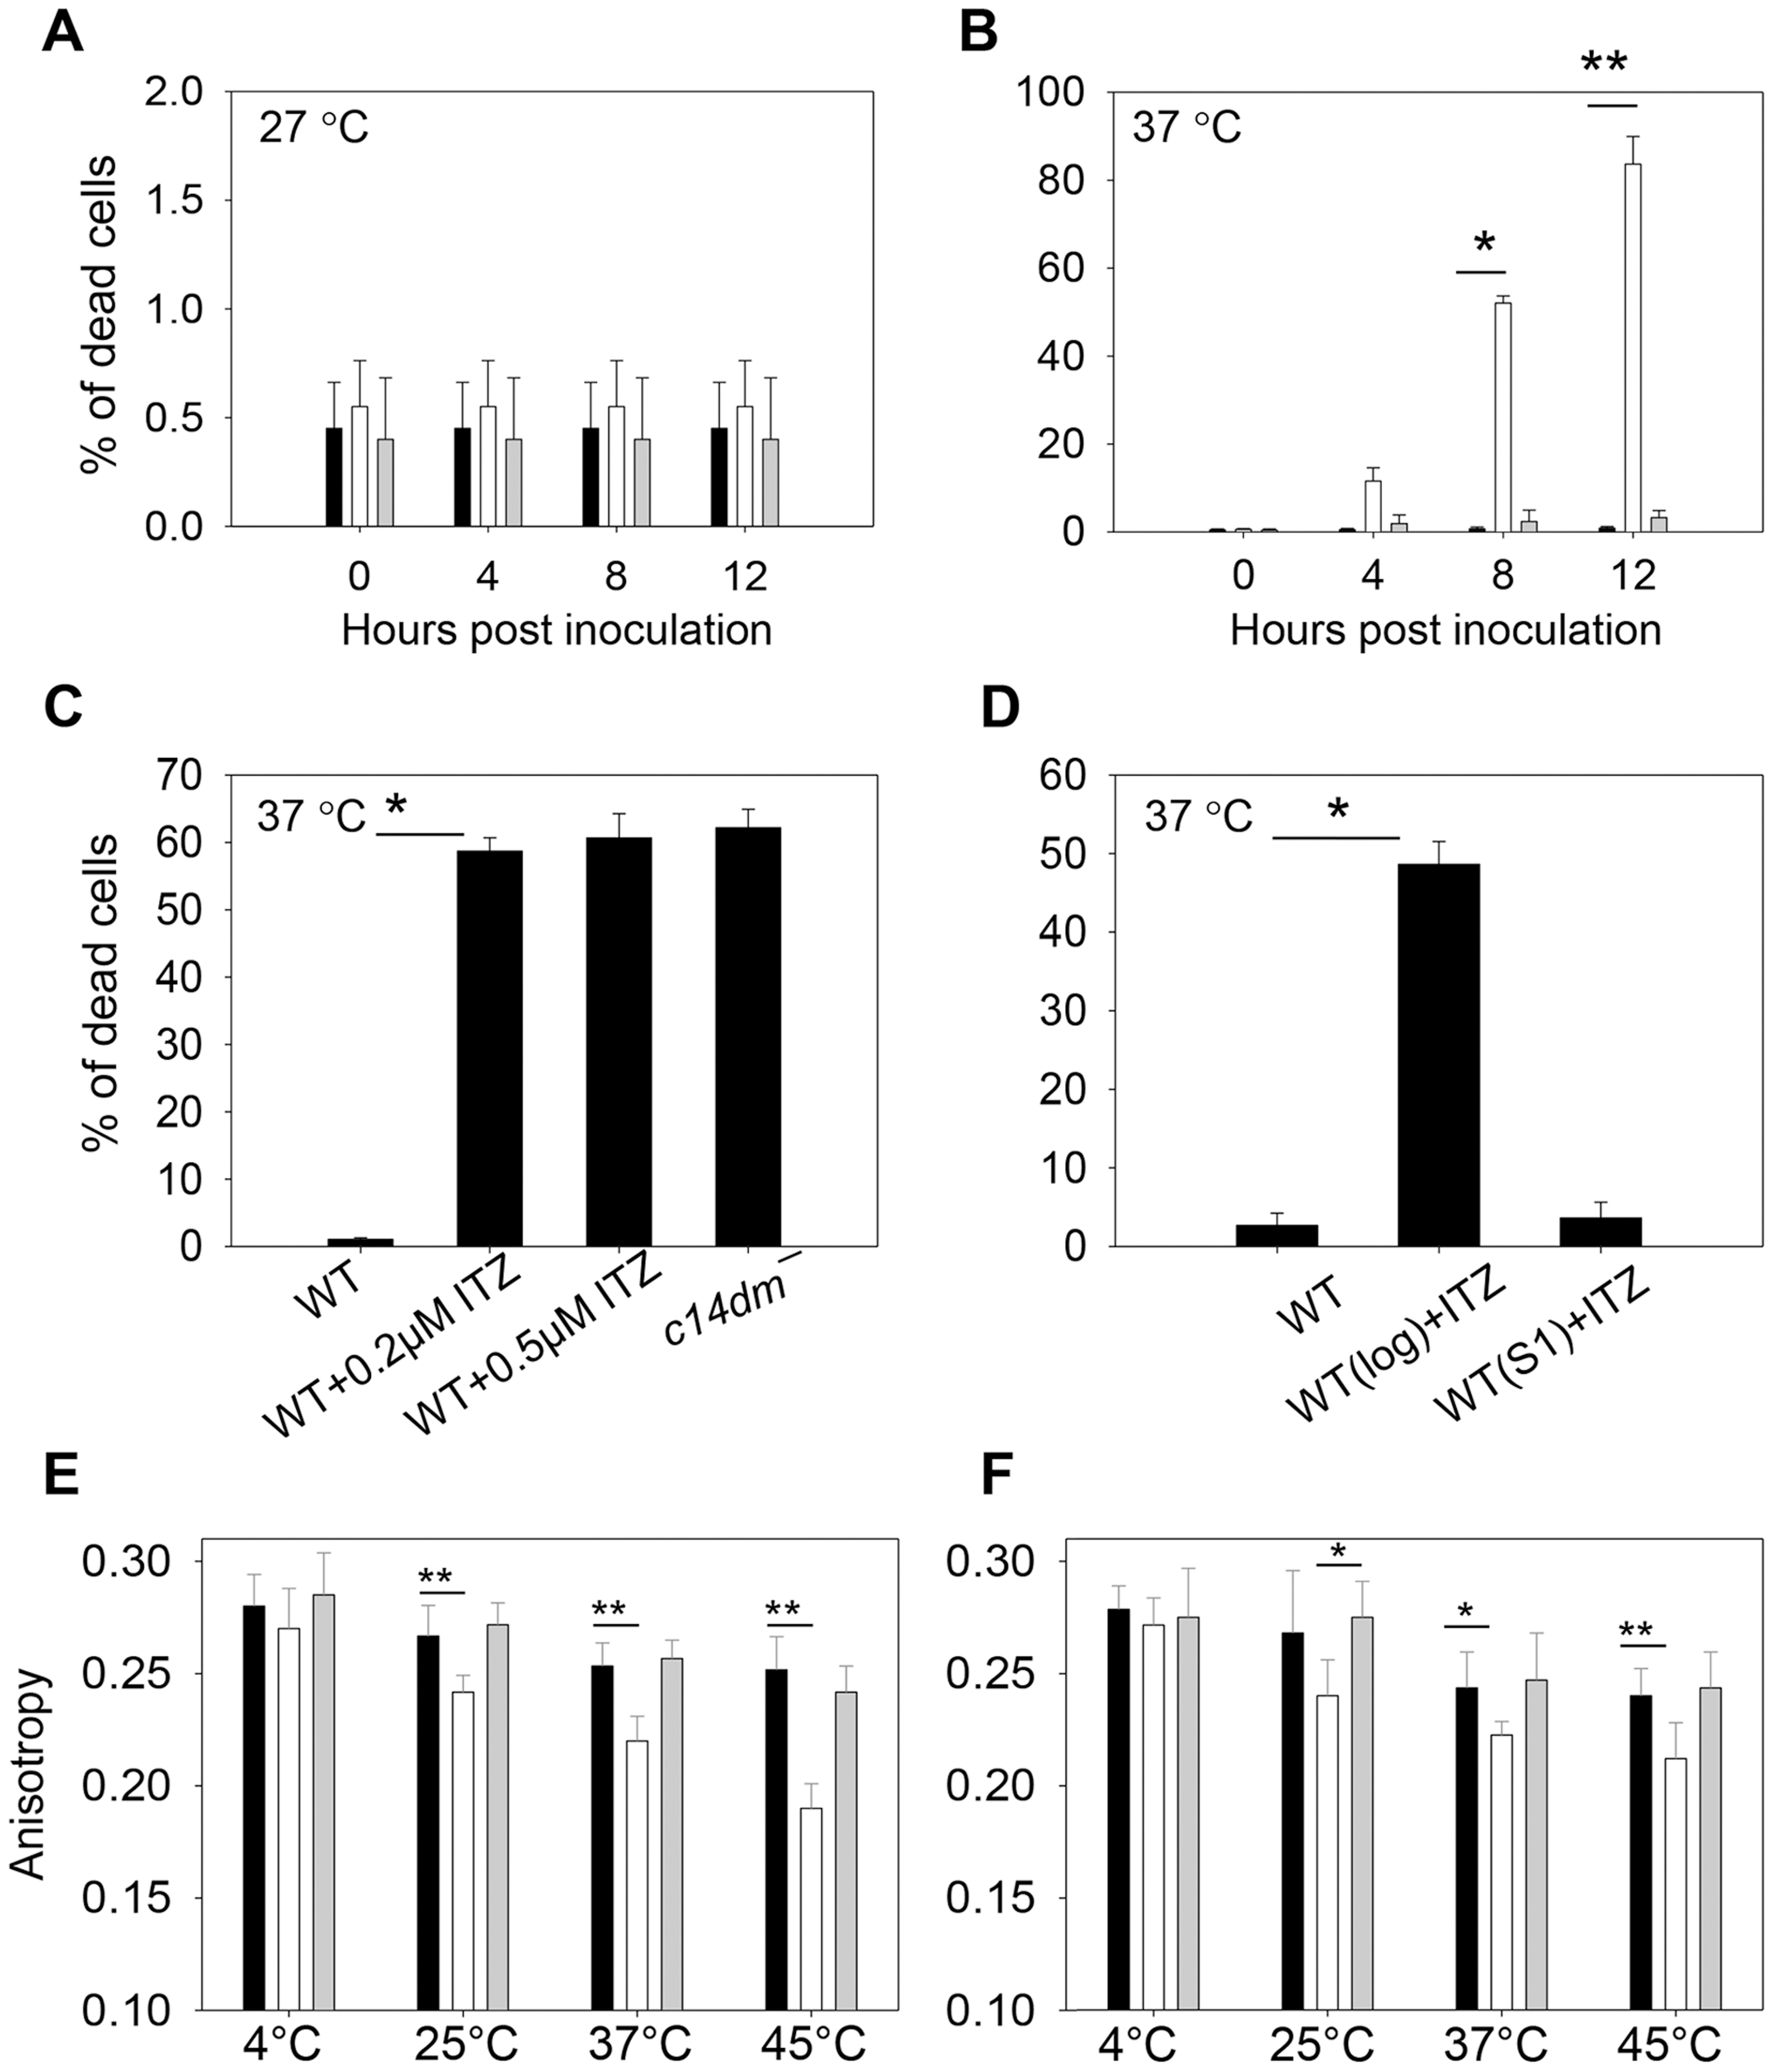 Inactivation of C14DM leads to extreme sensitivity to heat and increased membrane fluidity.